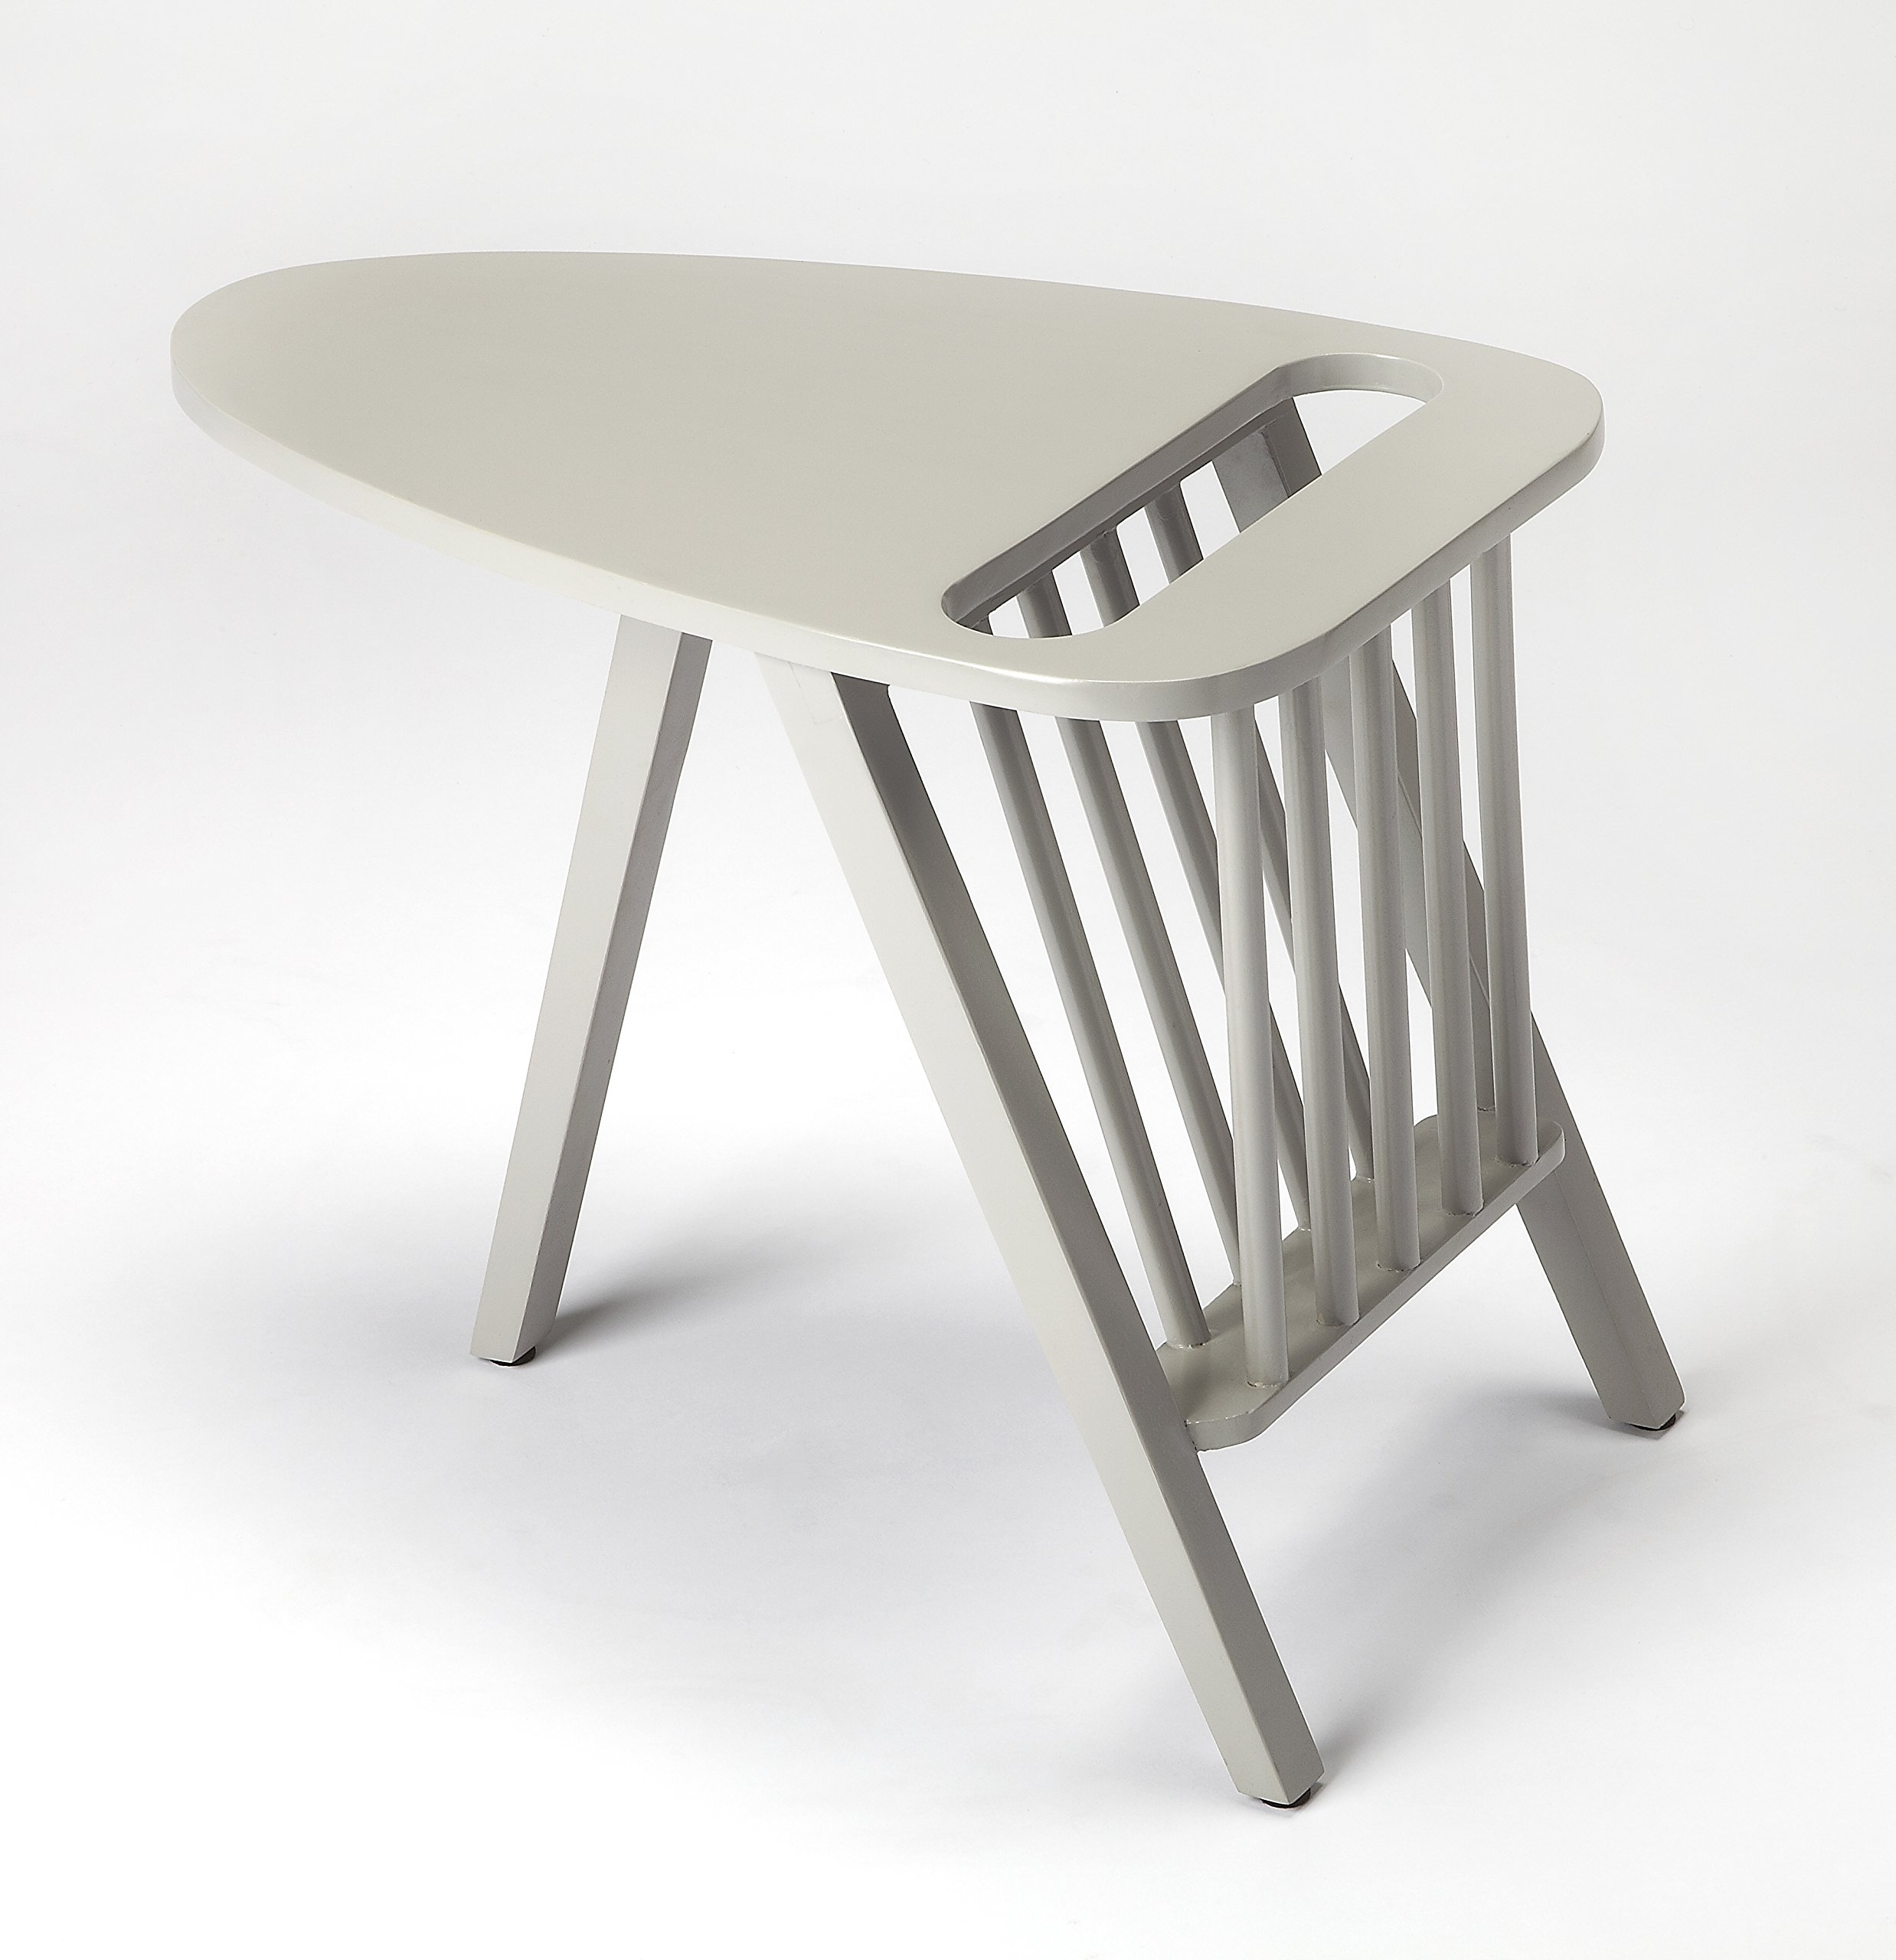 Butler specality company BUTLER 1188266 LOWERY GRAY MAGAZINE TABLE